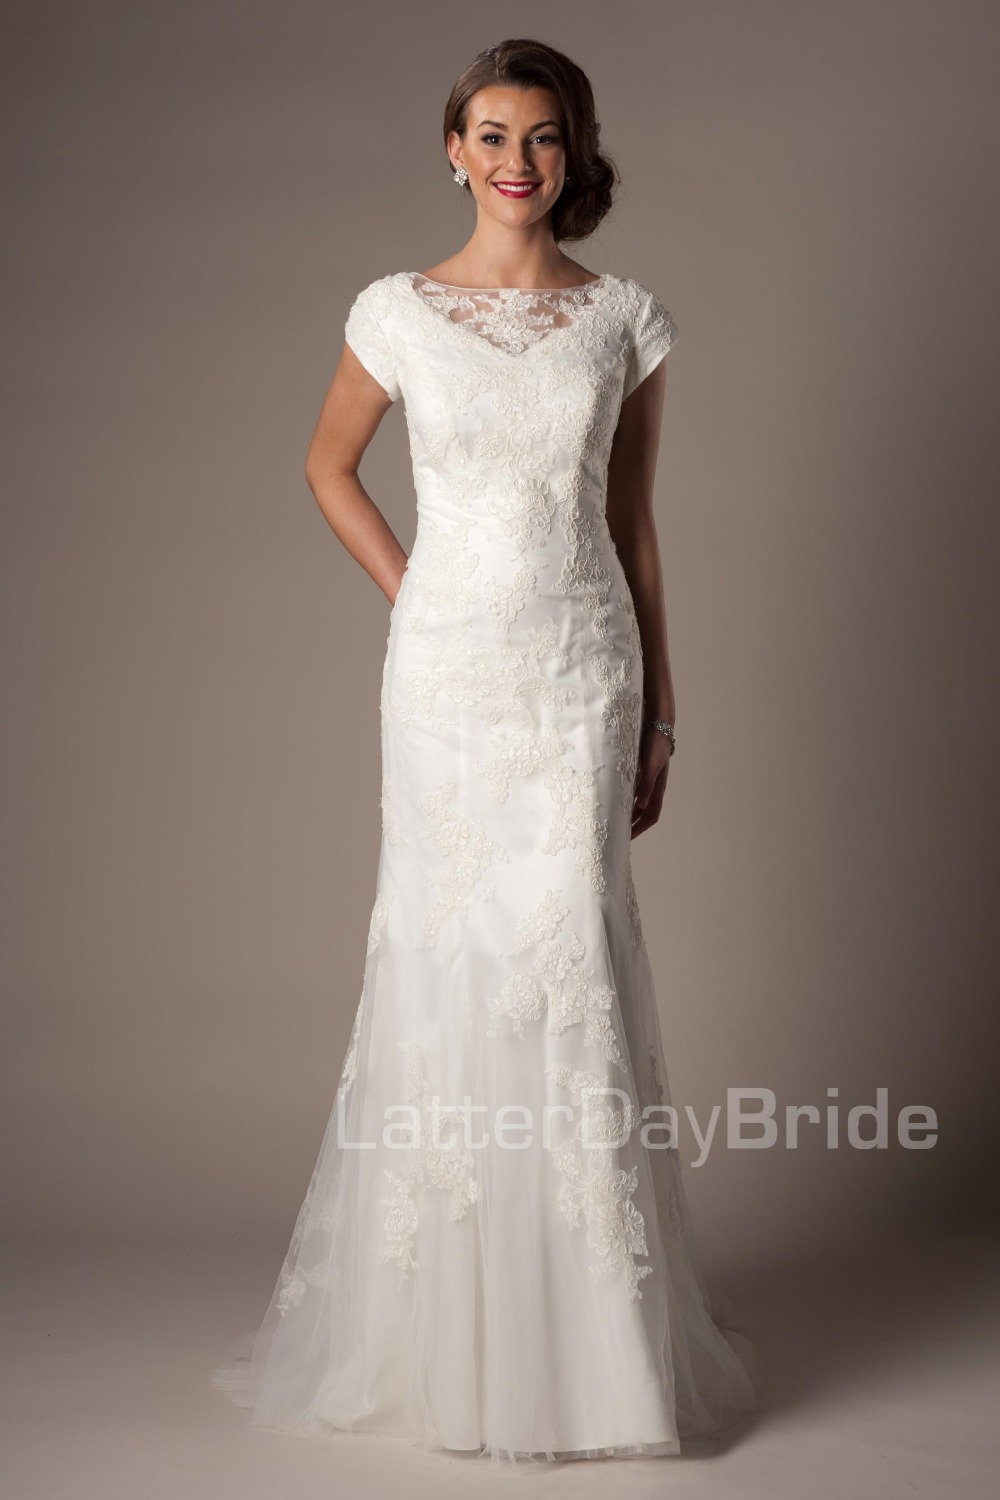 2019 New Cheap Modest  Ivory Mermaid Wedding Dress With Sleeves Long Floor Length Cap Sleeves Lace Bridal Gowns Modest